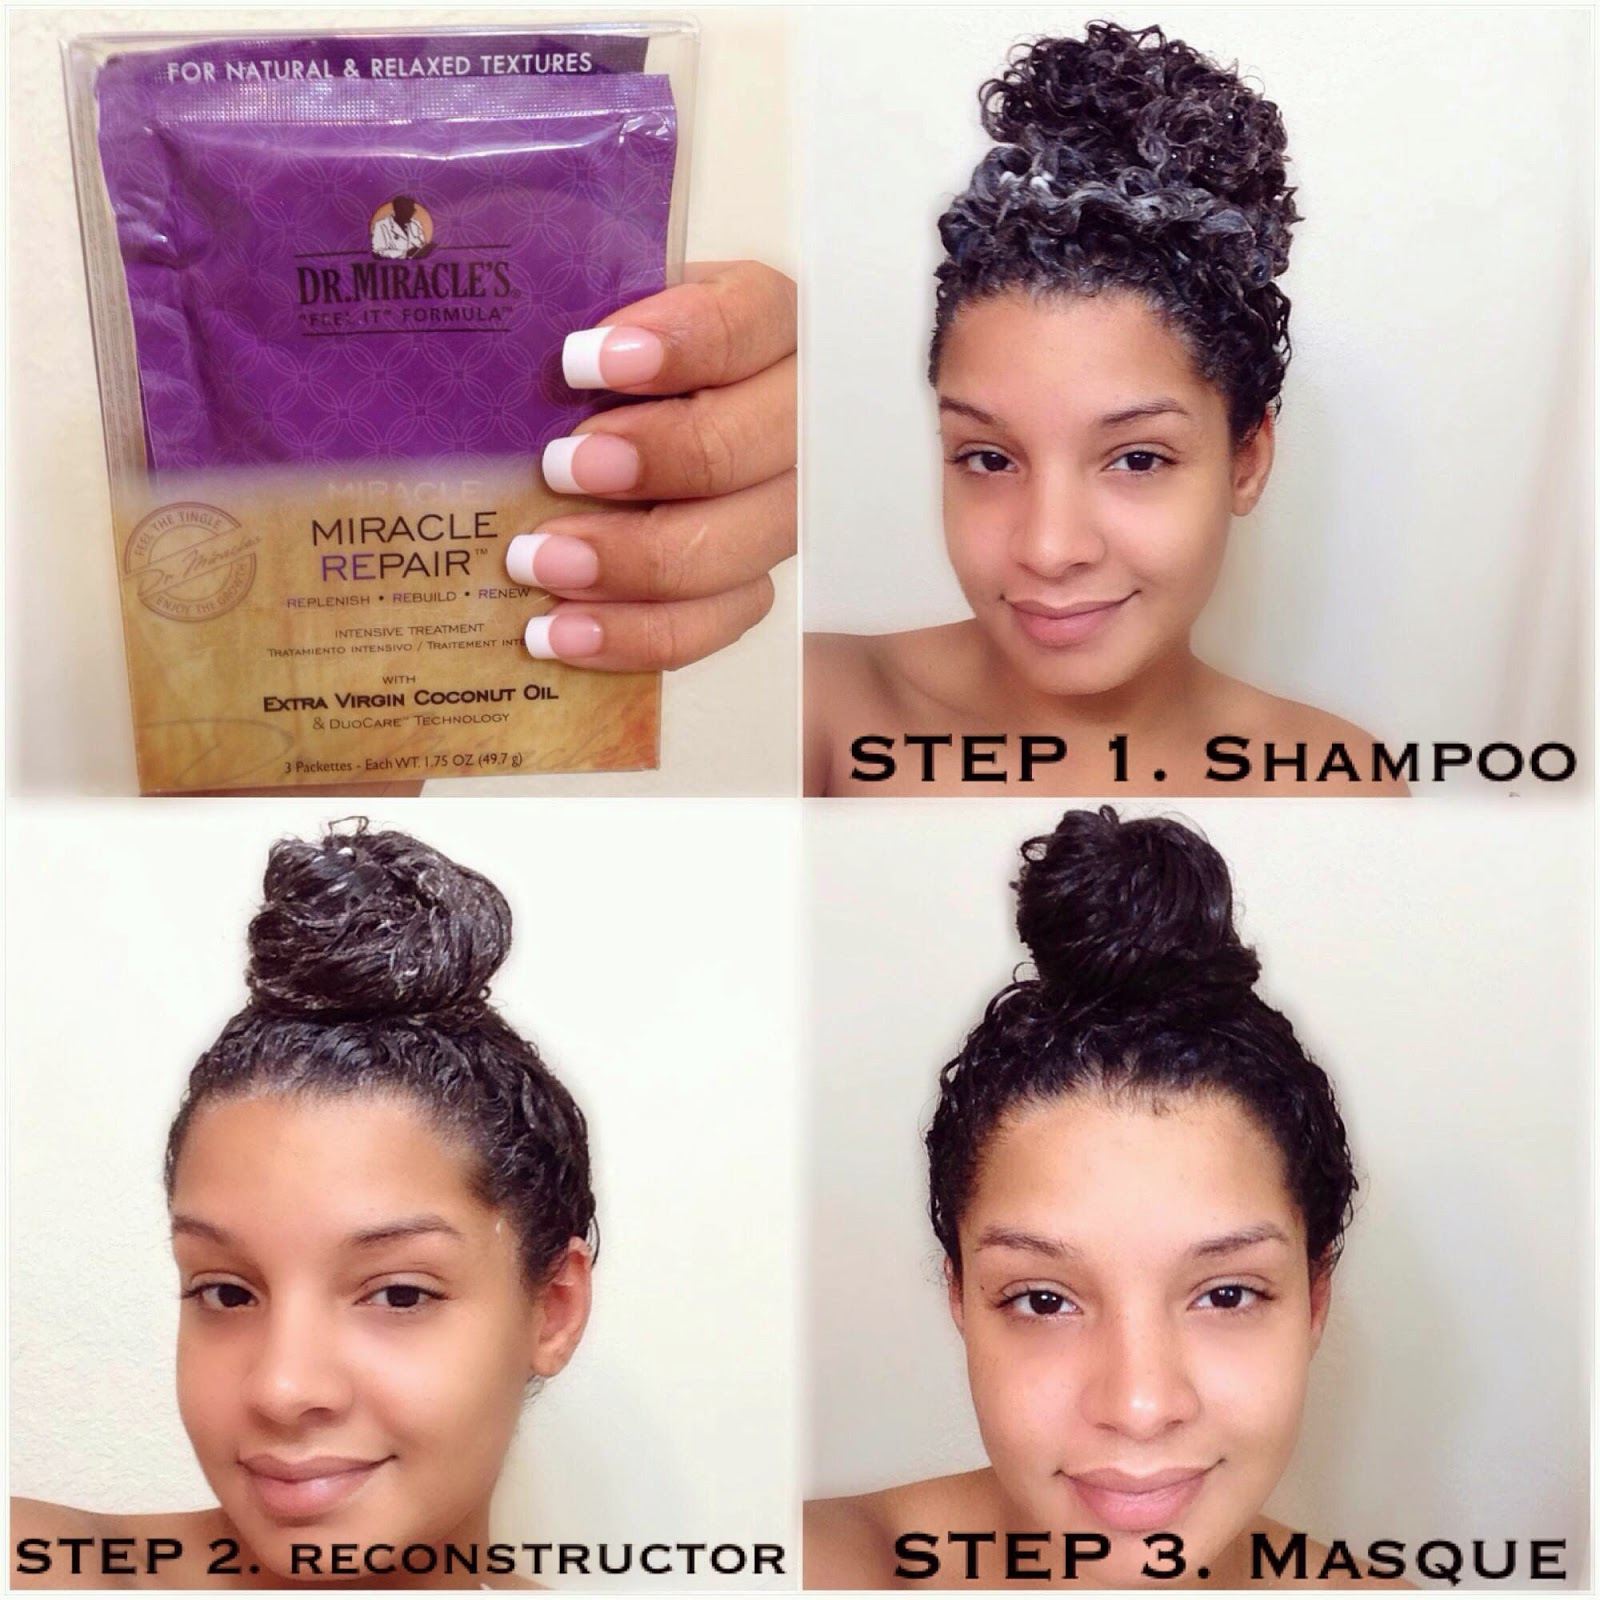 Dr Miracles 3 Step Miracle Repair System Review